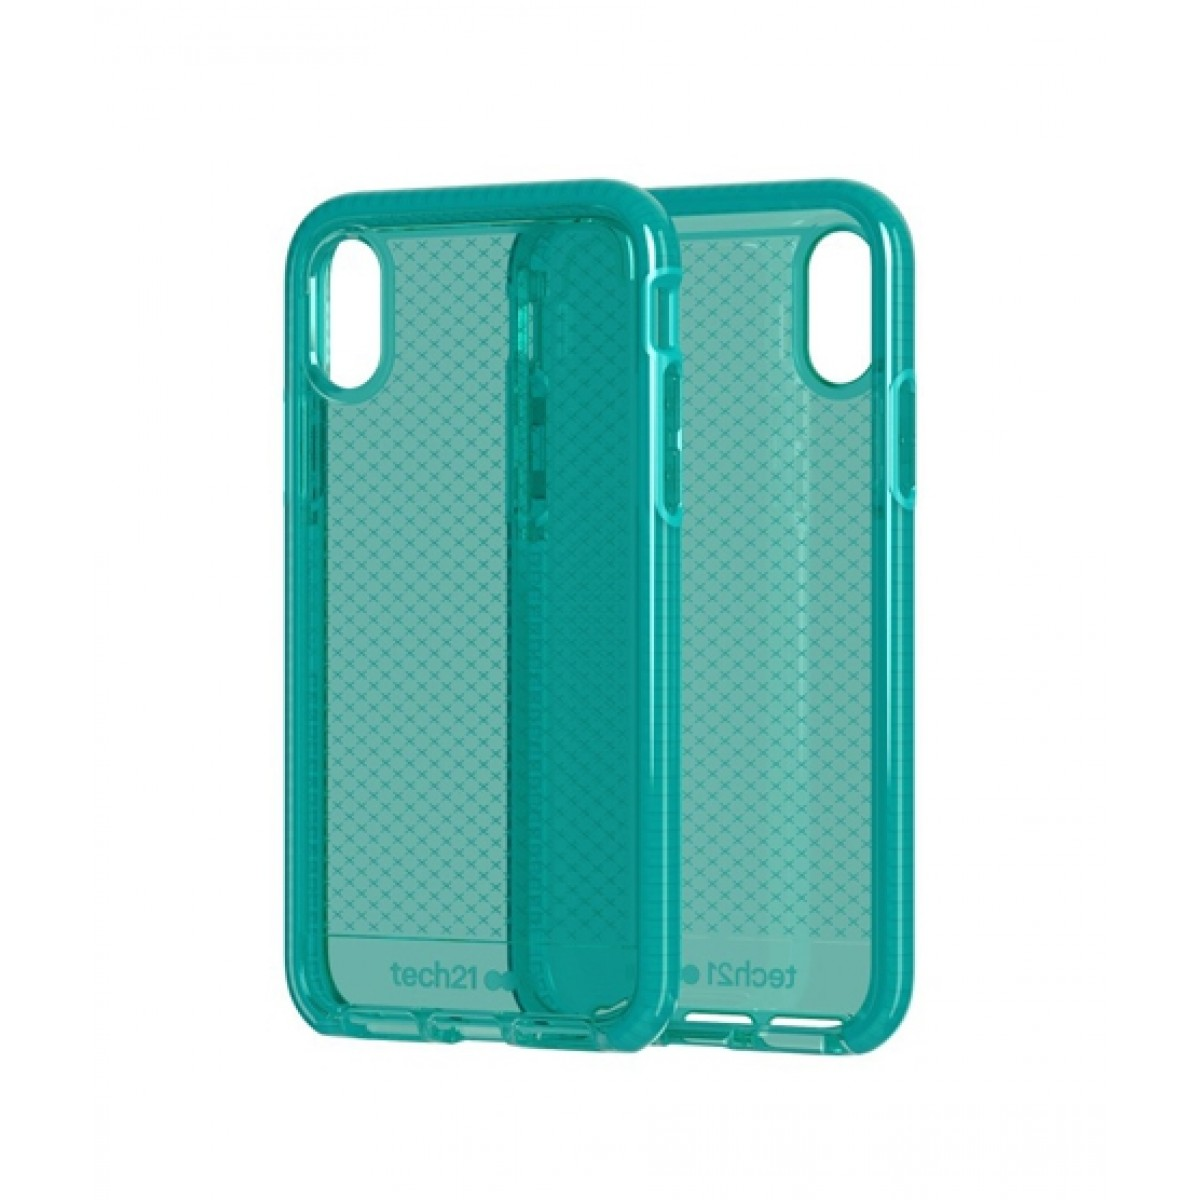 new product 70c2c e67c4 Tech21 Evo Check Vert Case For iPhone XR